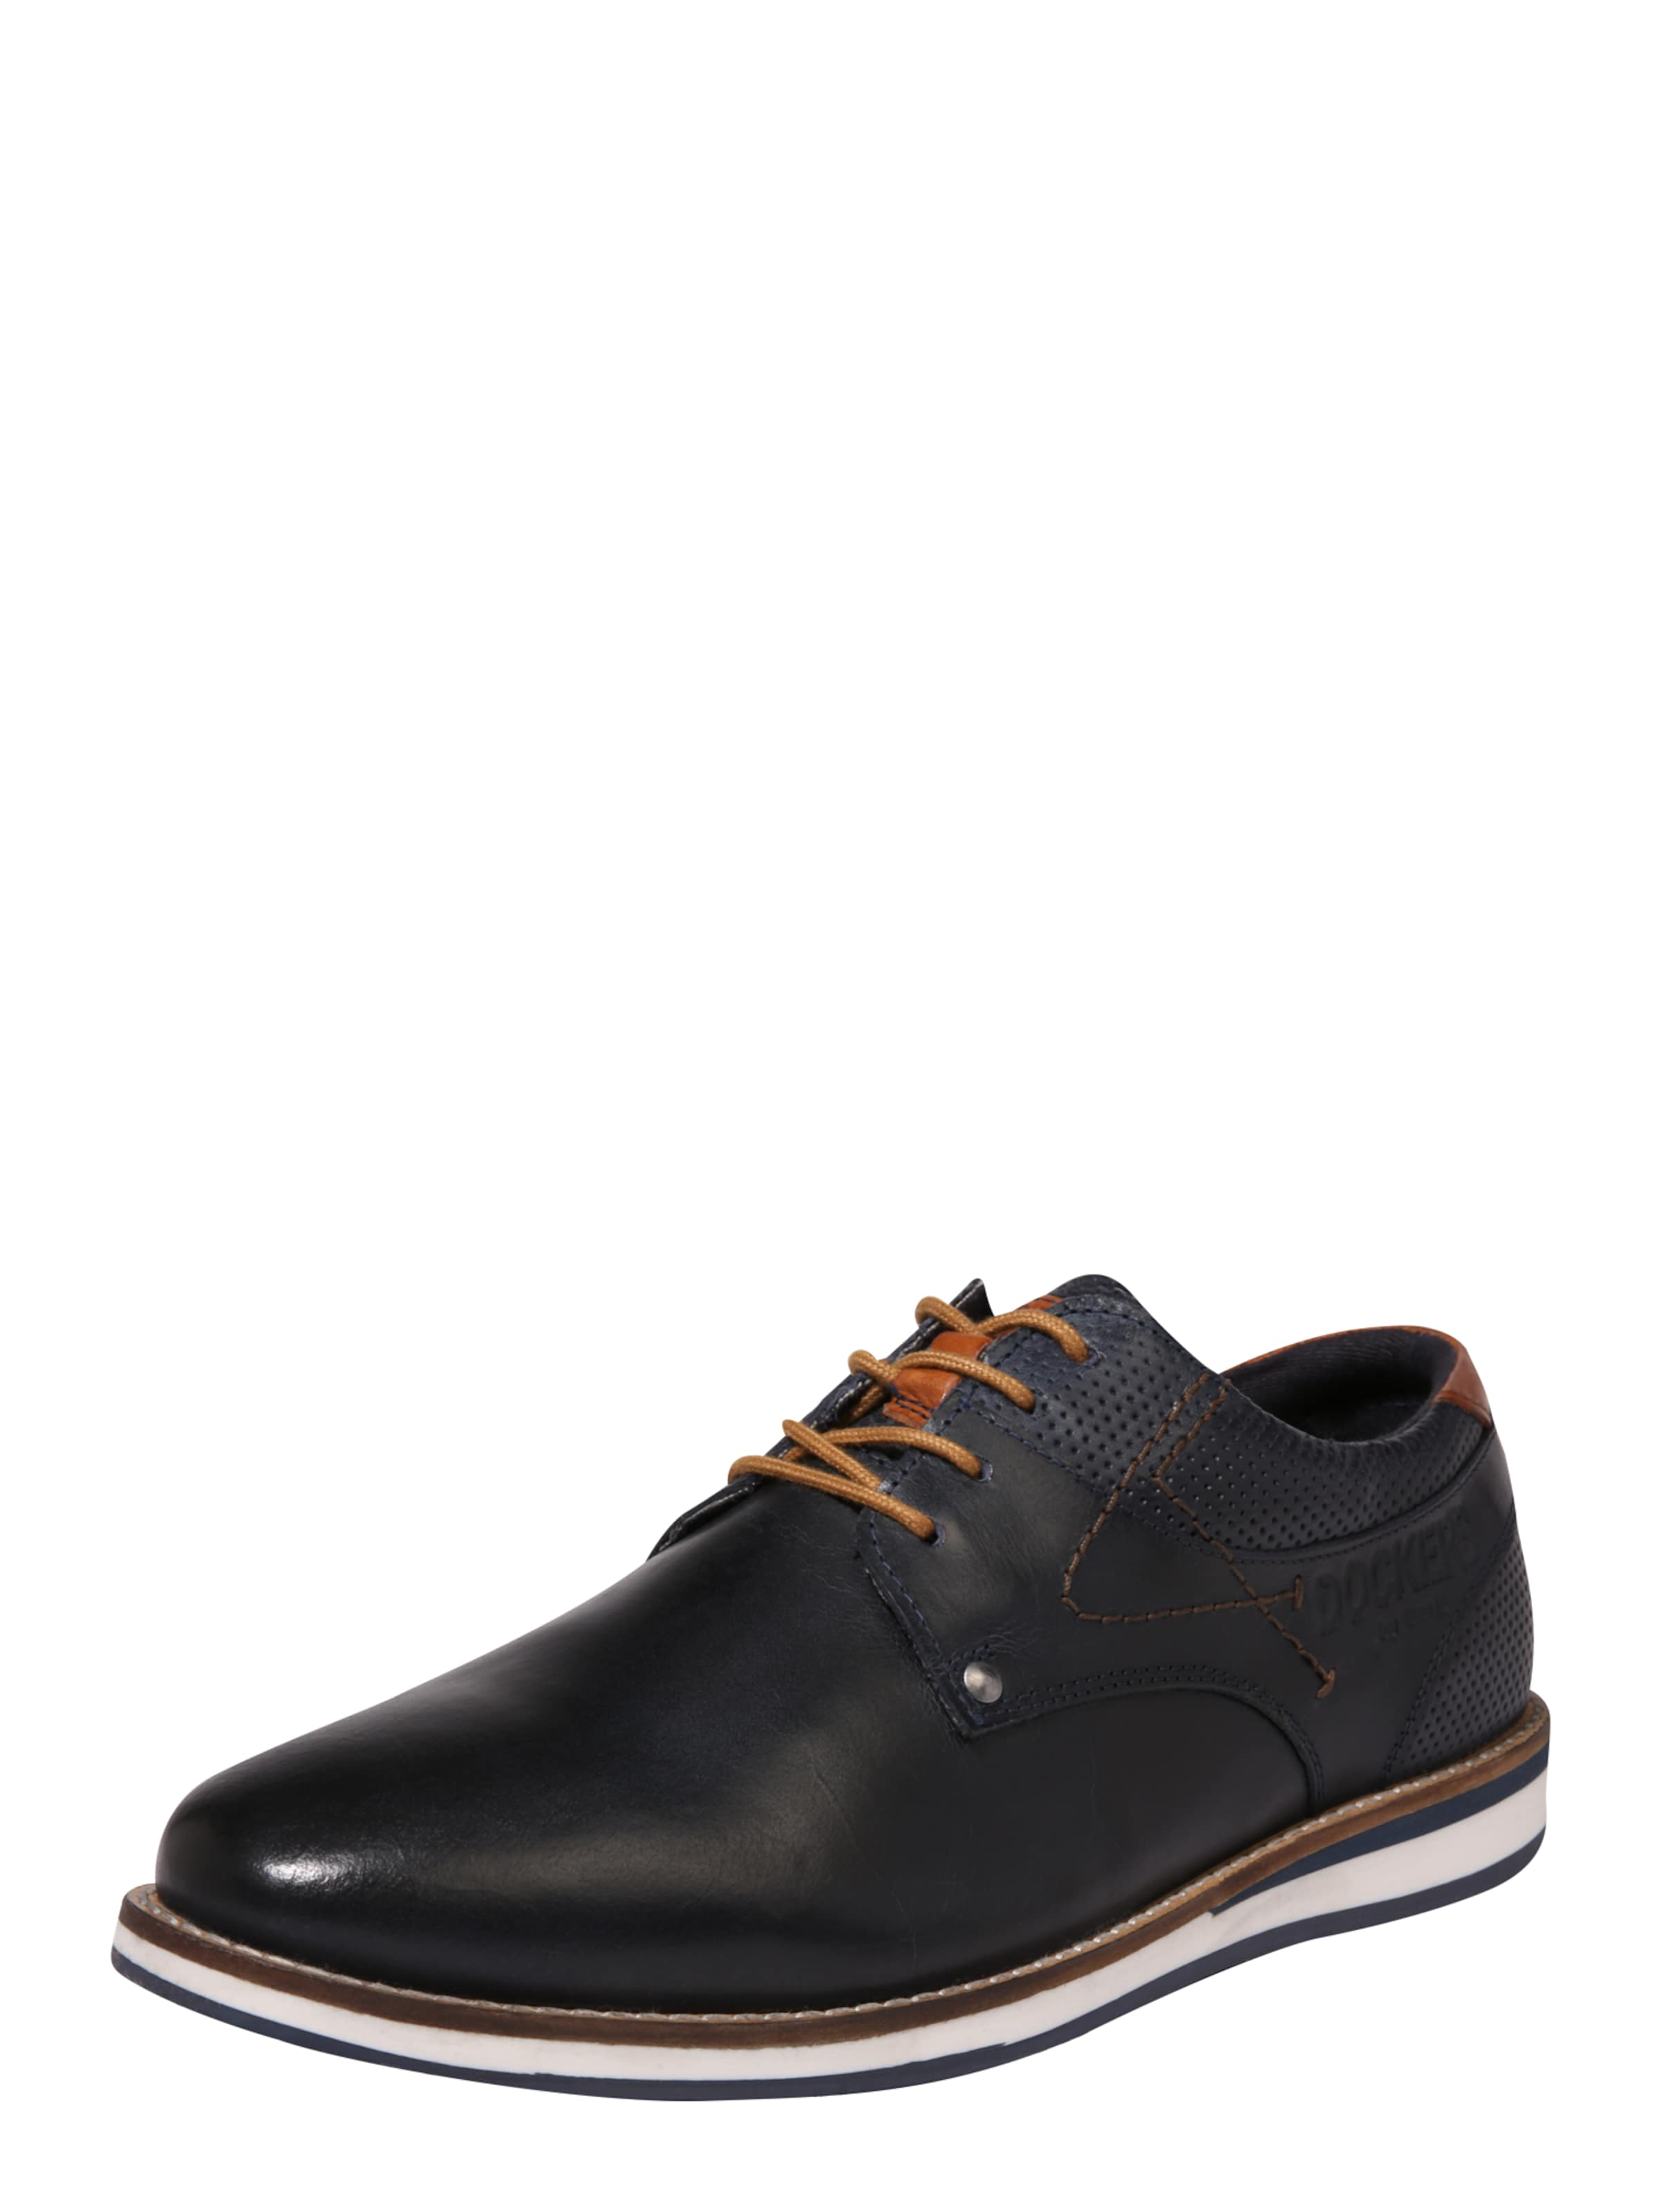 Dockers NavyCognac Gerli In Halbschuhe By SRq35AcjL4